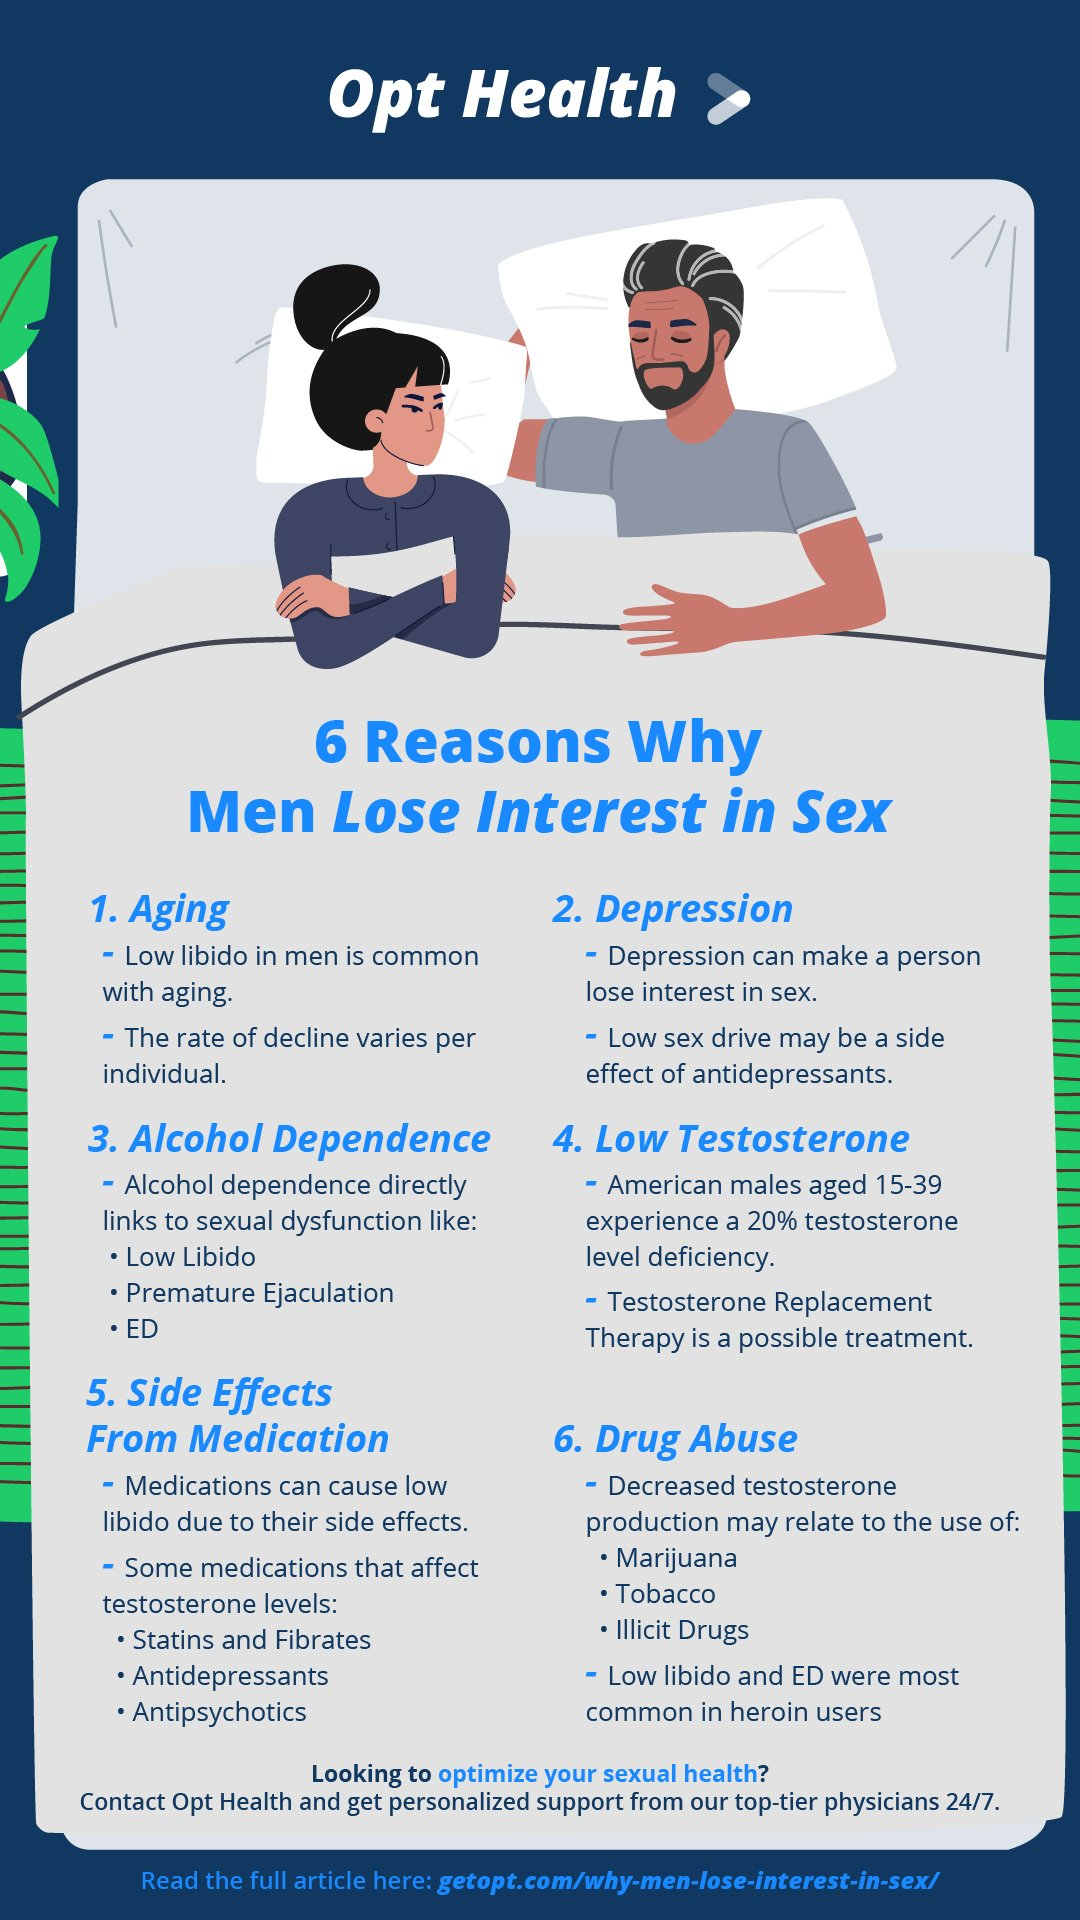 6‌ ‌Reasons‌ ‌Why‌ ‌Men‌ ‌Lose‌ ‌Interest‌ ‌in‌ ‌Sex‌ ‌